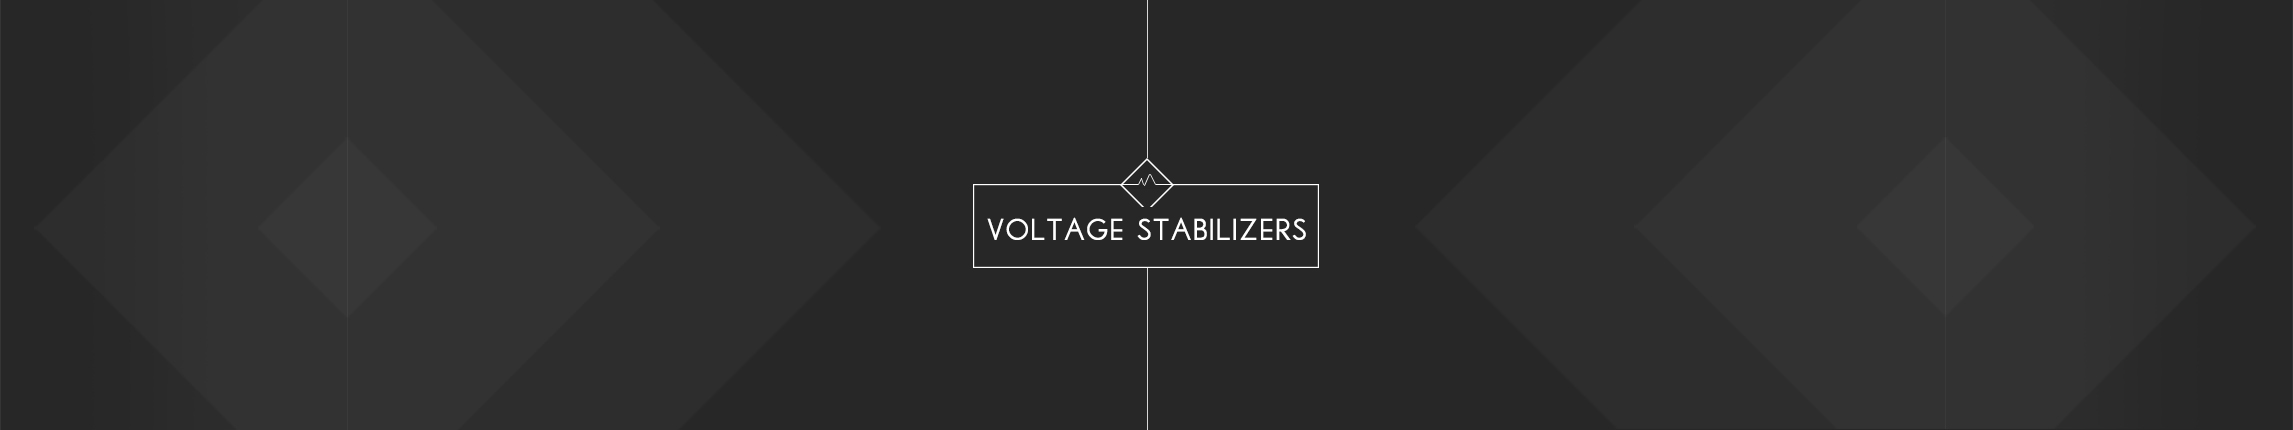 V-Guard Voltage Stabilizers